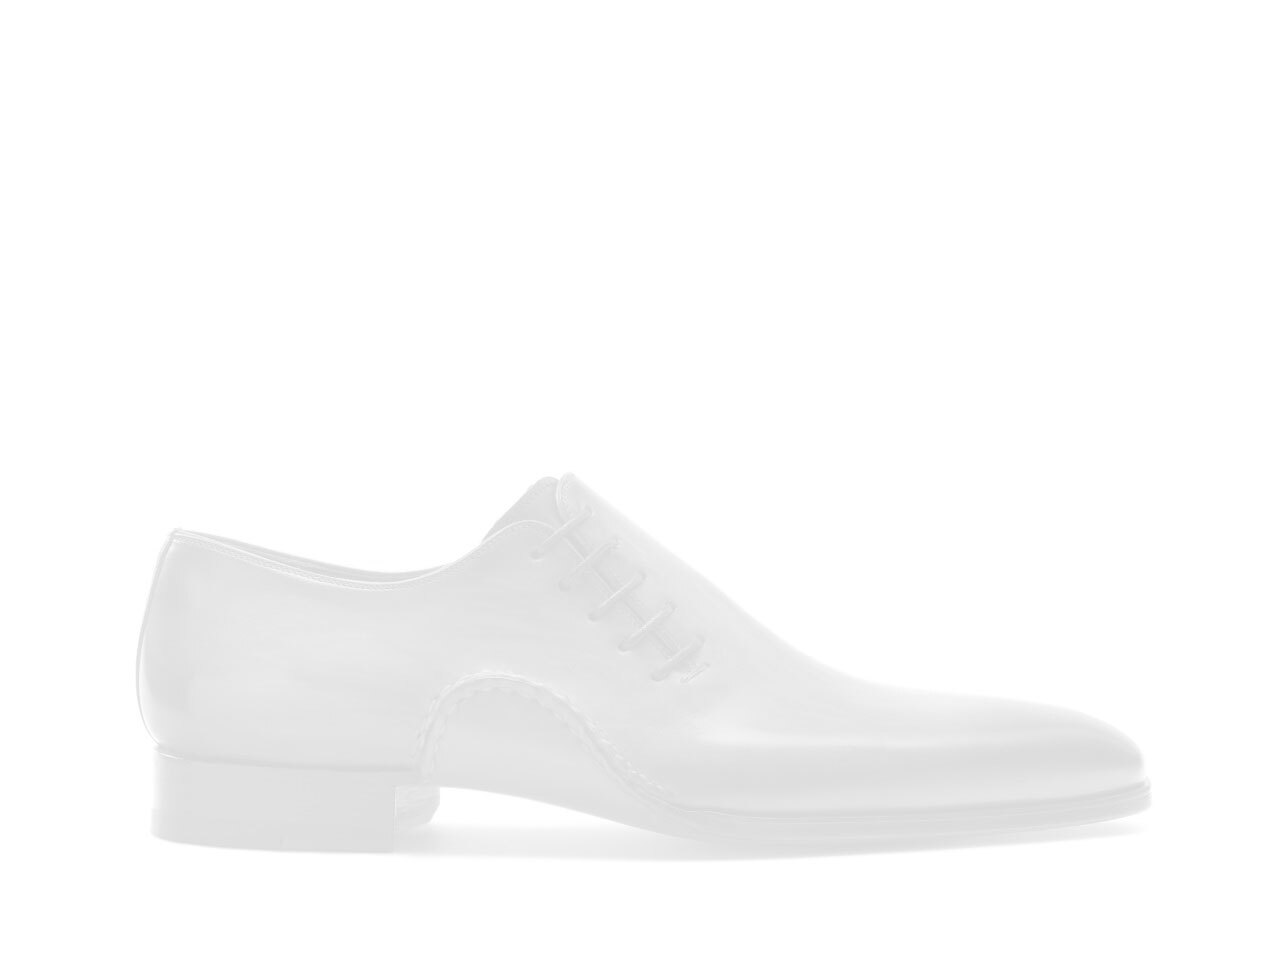 Patent Leather - Formal Shoes by Magnanni